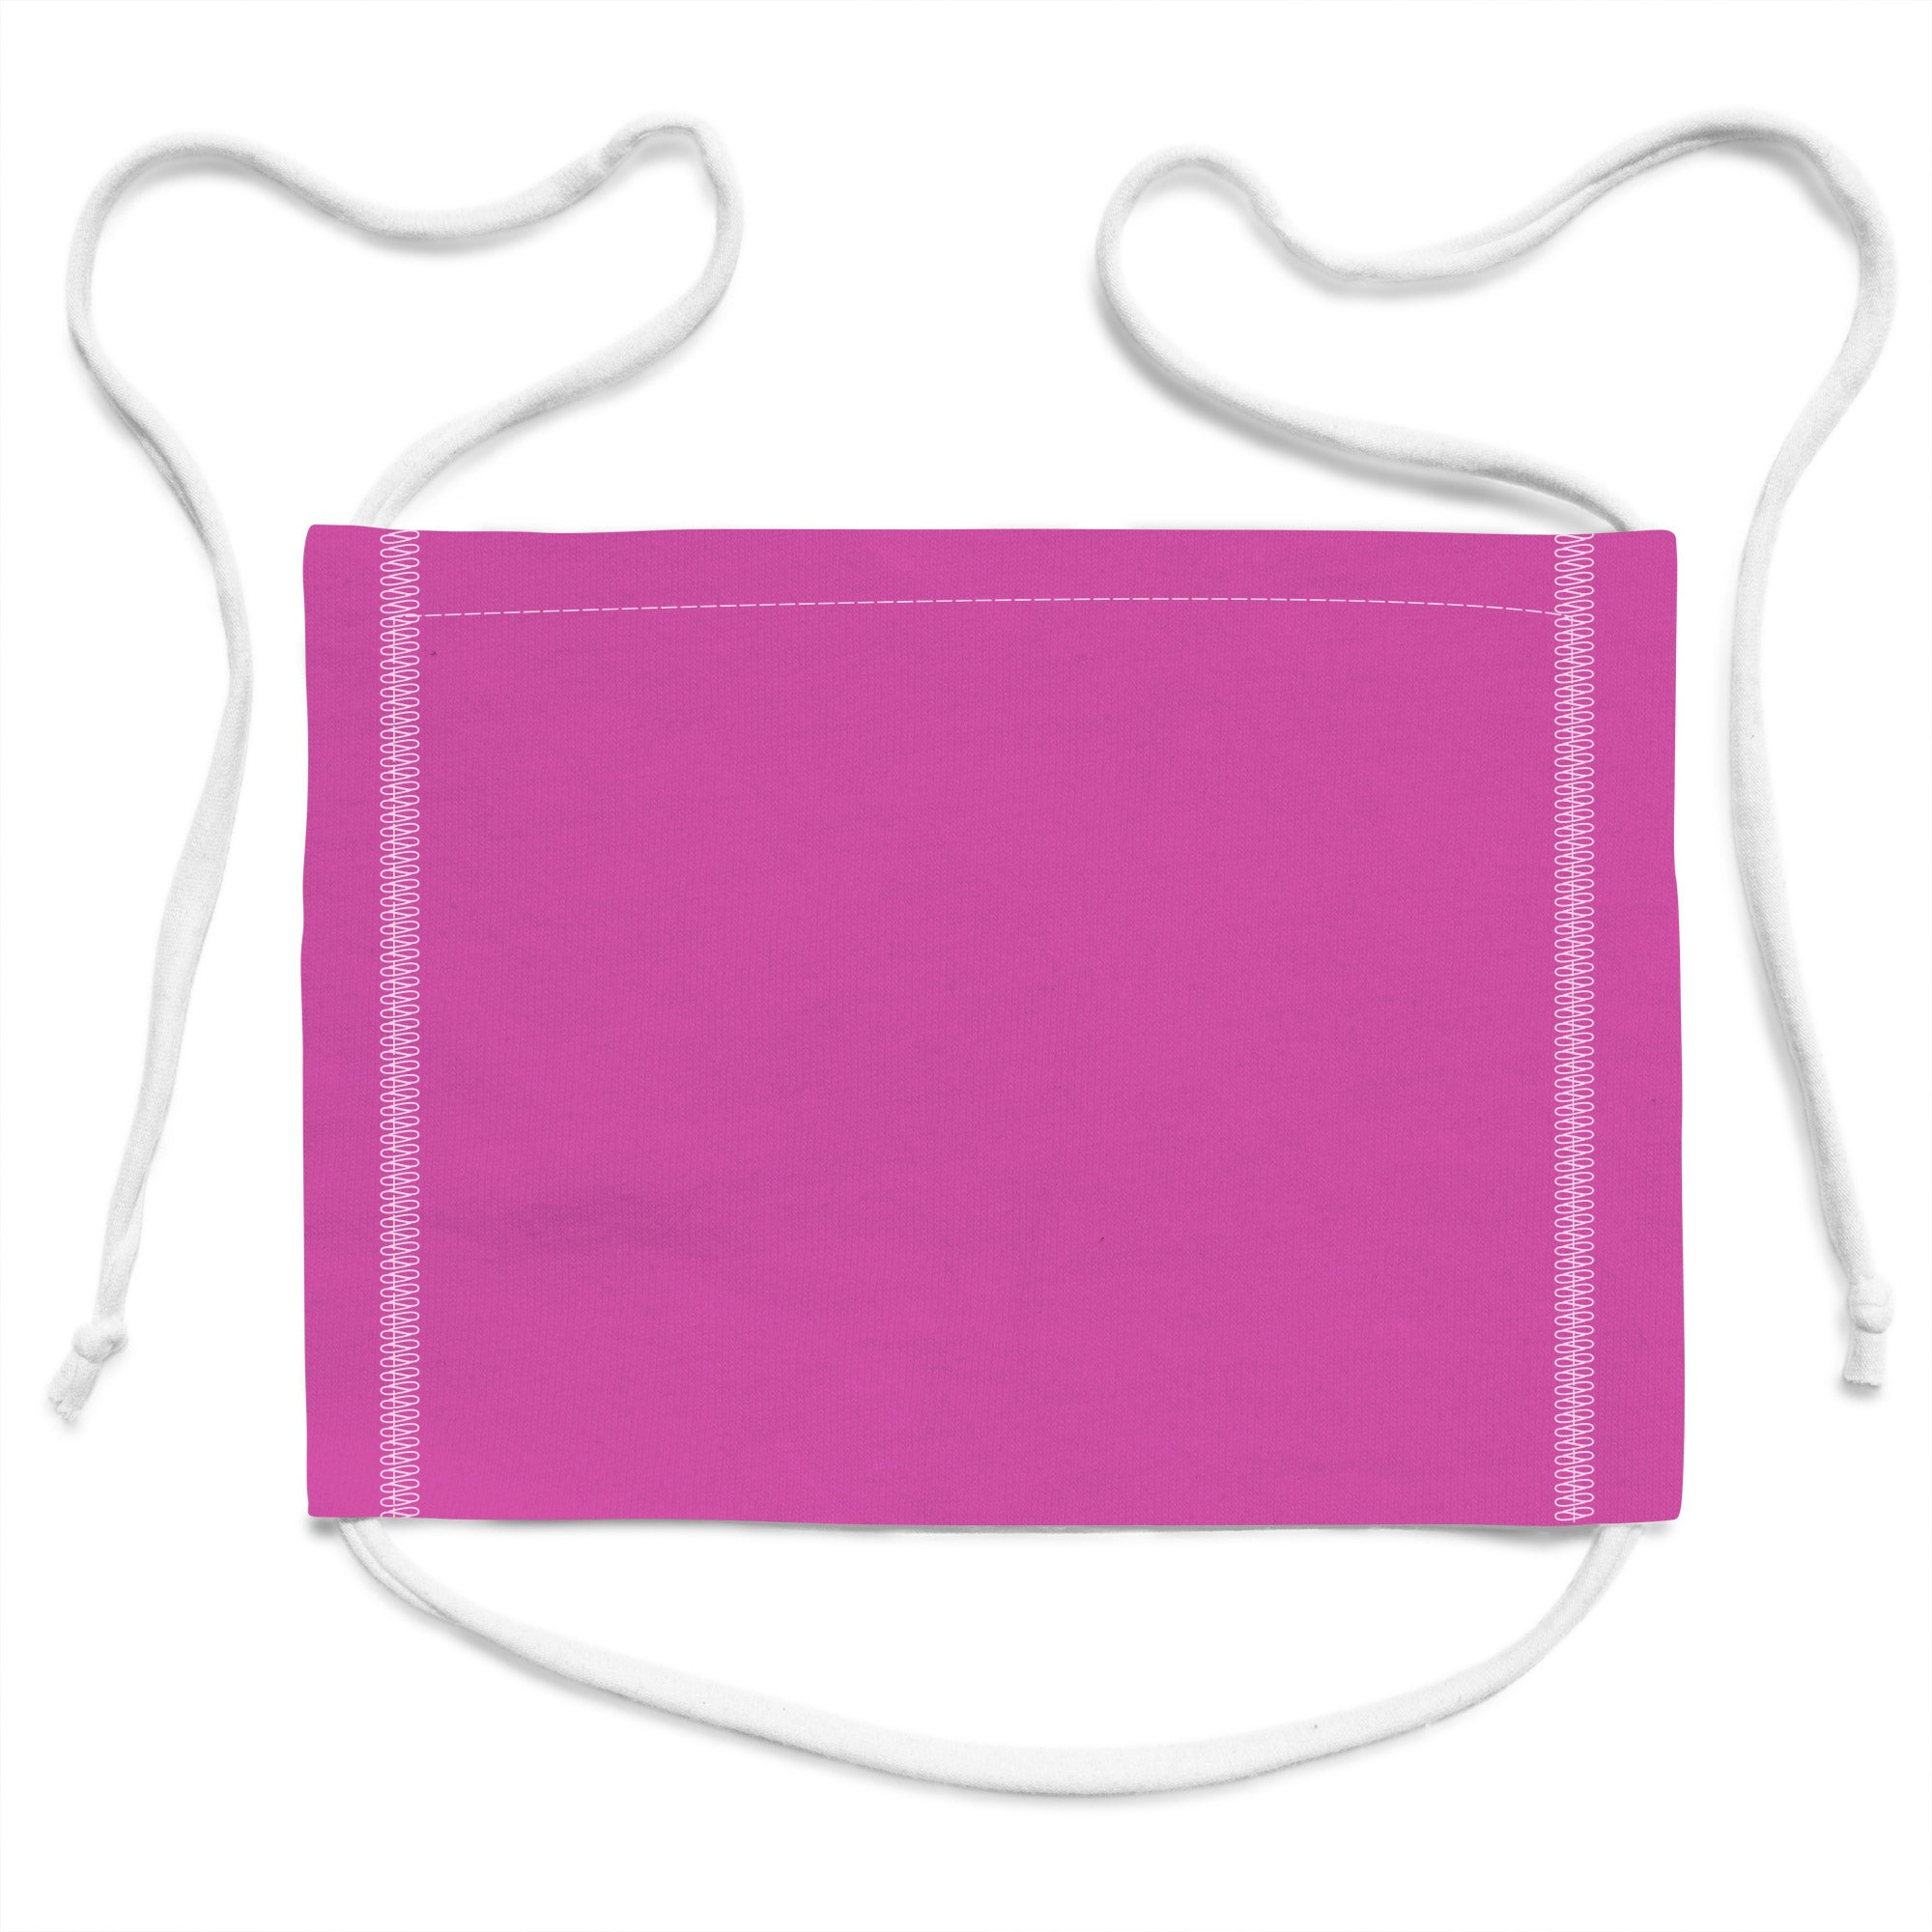 CHEAP Pink Face Mask 26660545833 – Clothing Accessories